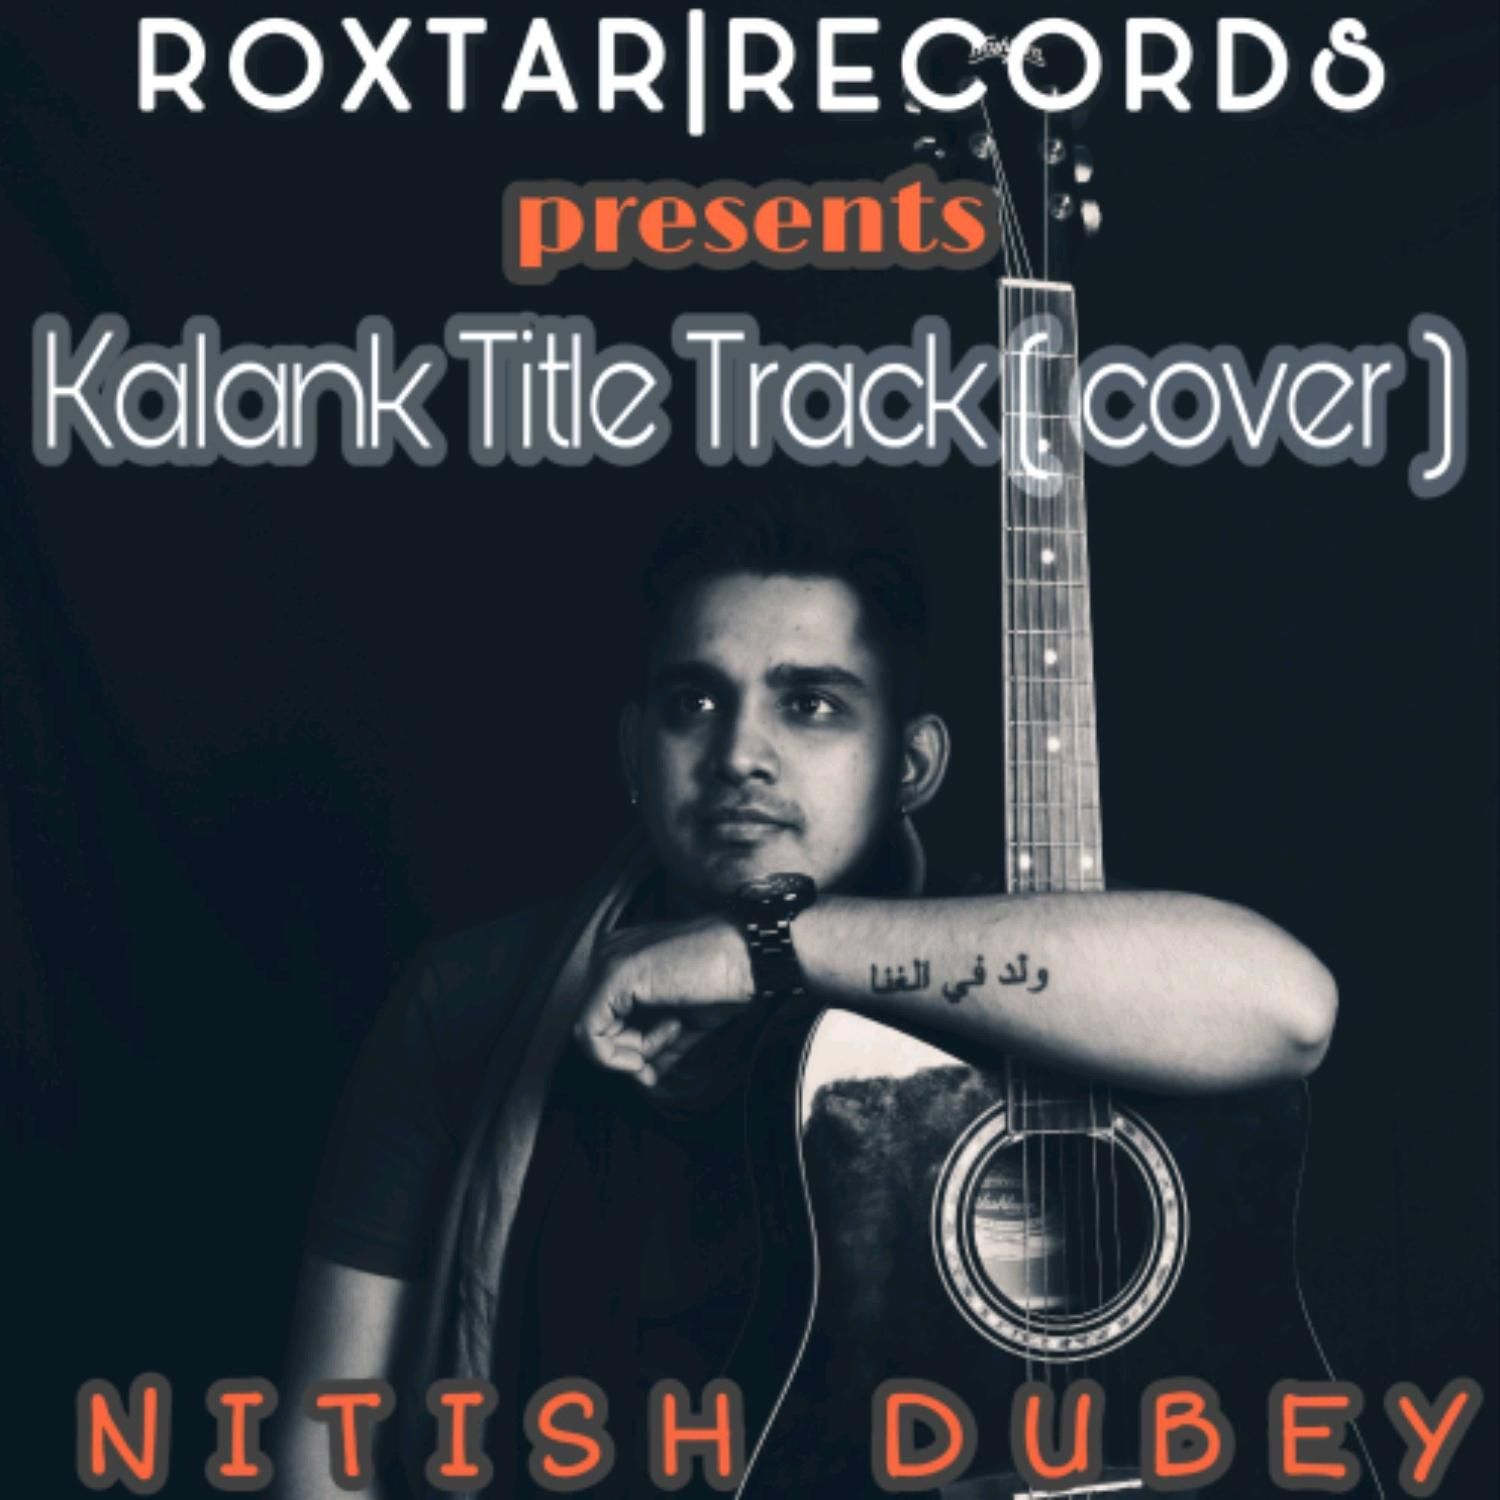 Kalank Title Track (Cover)